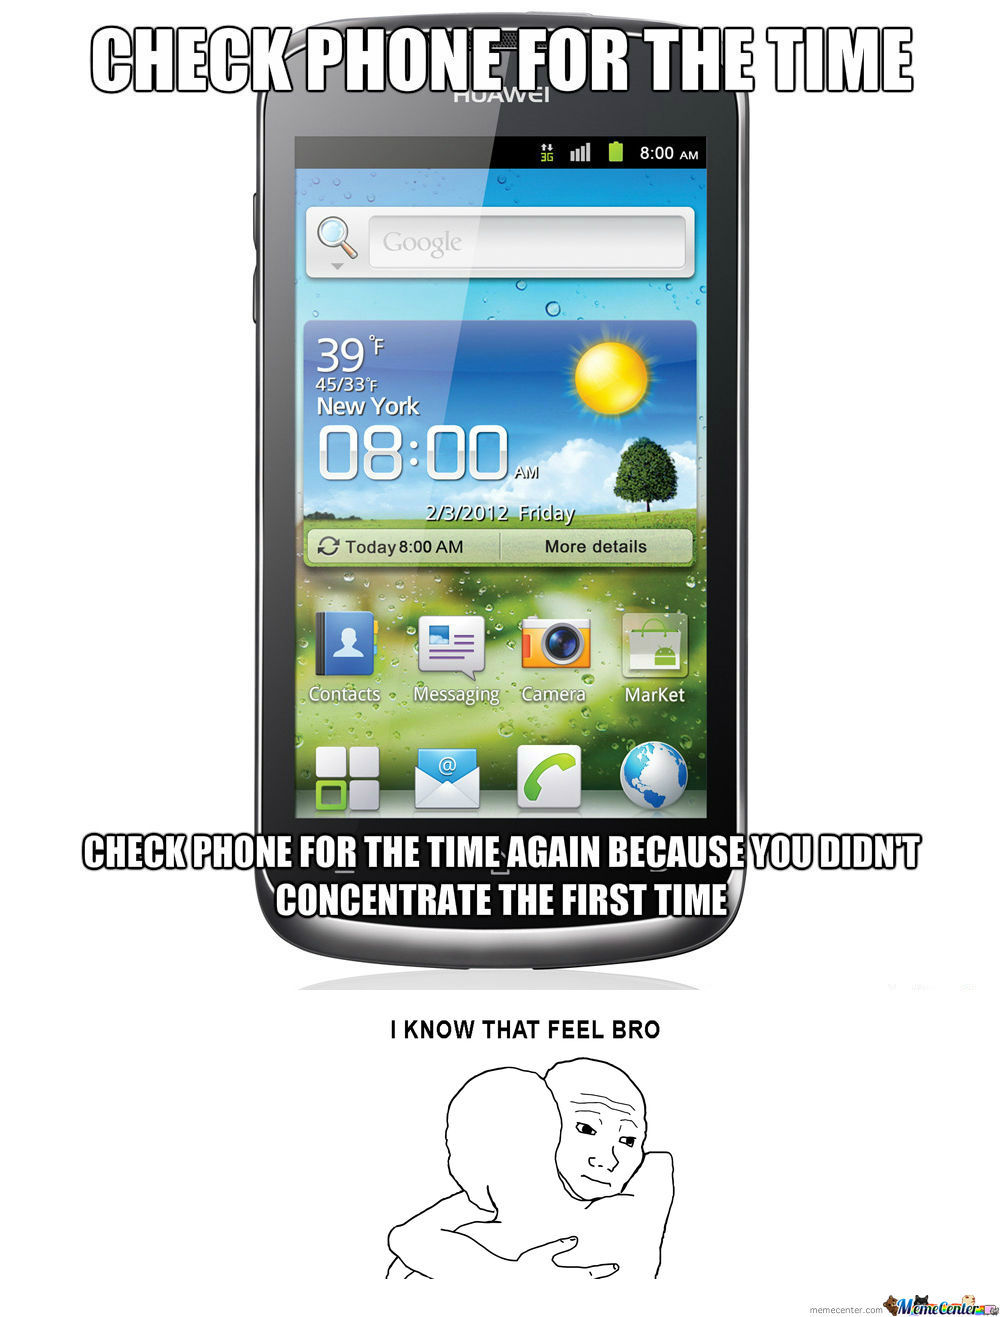 [RMX] So True...time Checking On Phone